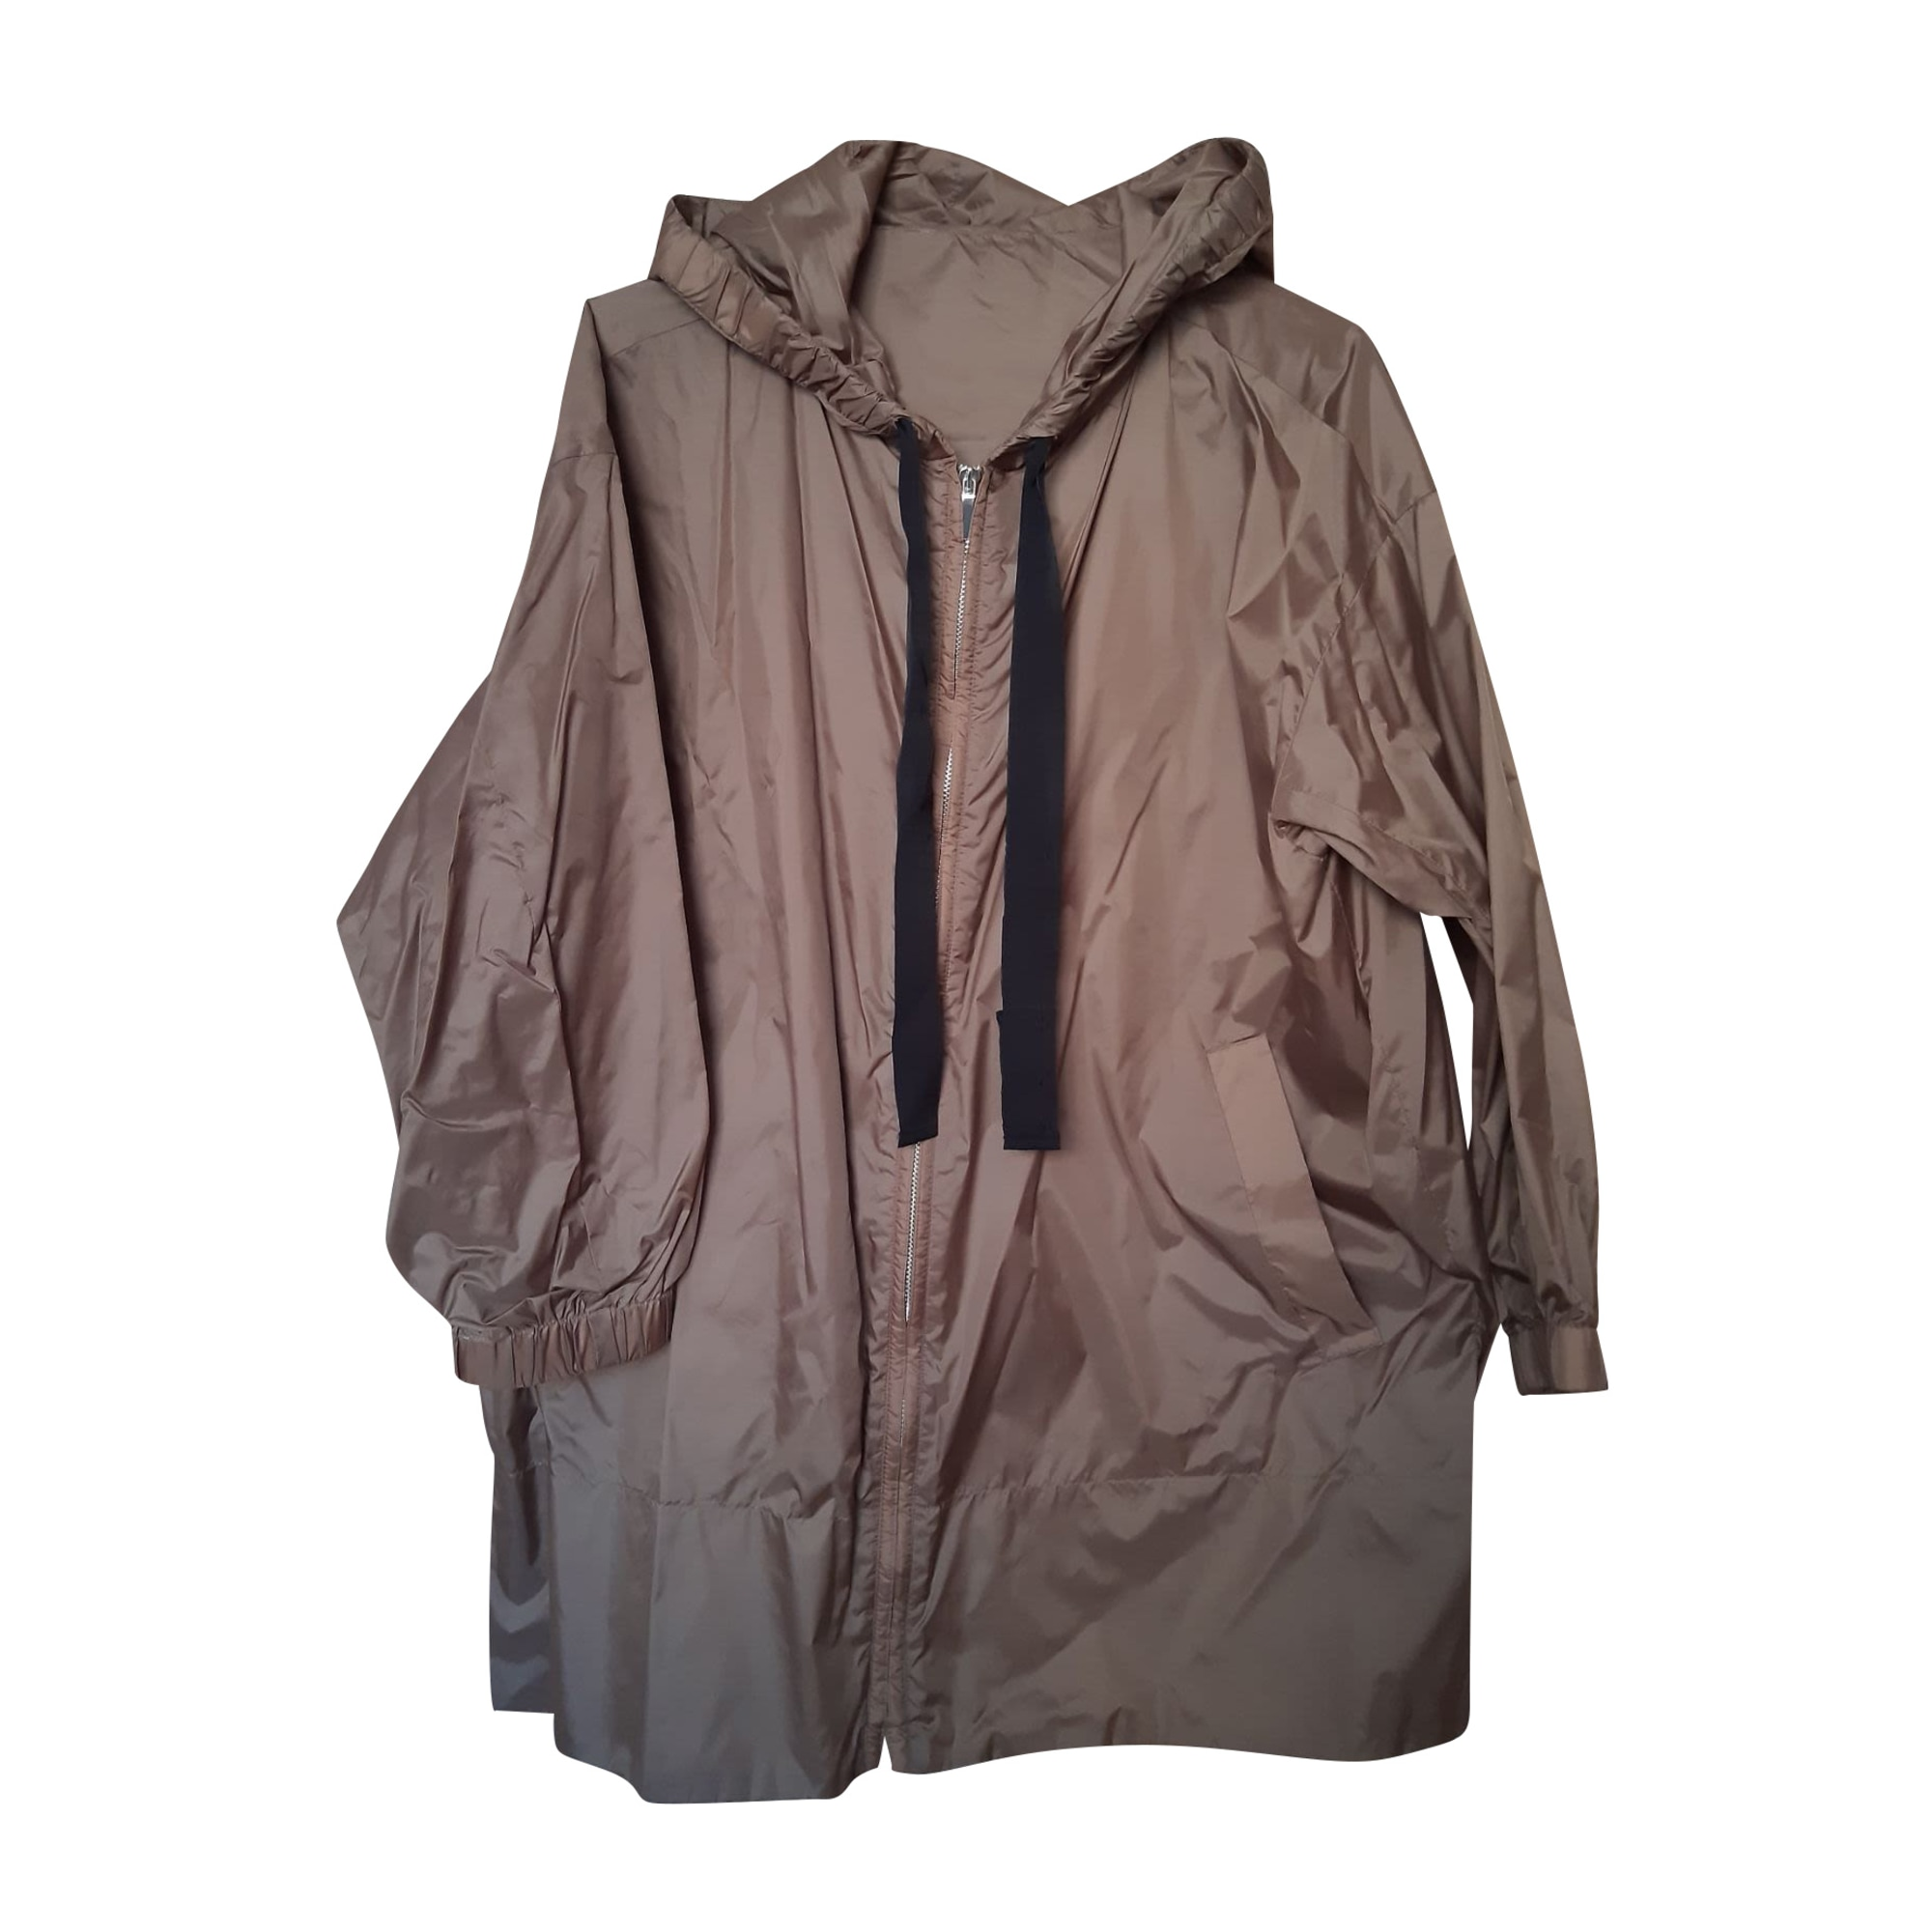 Imperméable, trench MAX MARA Beige, camel